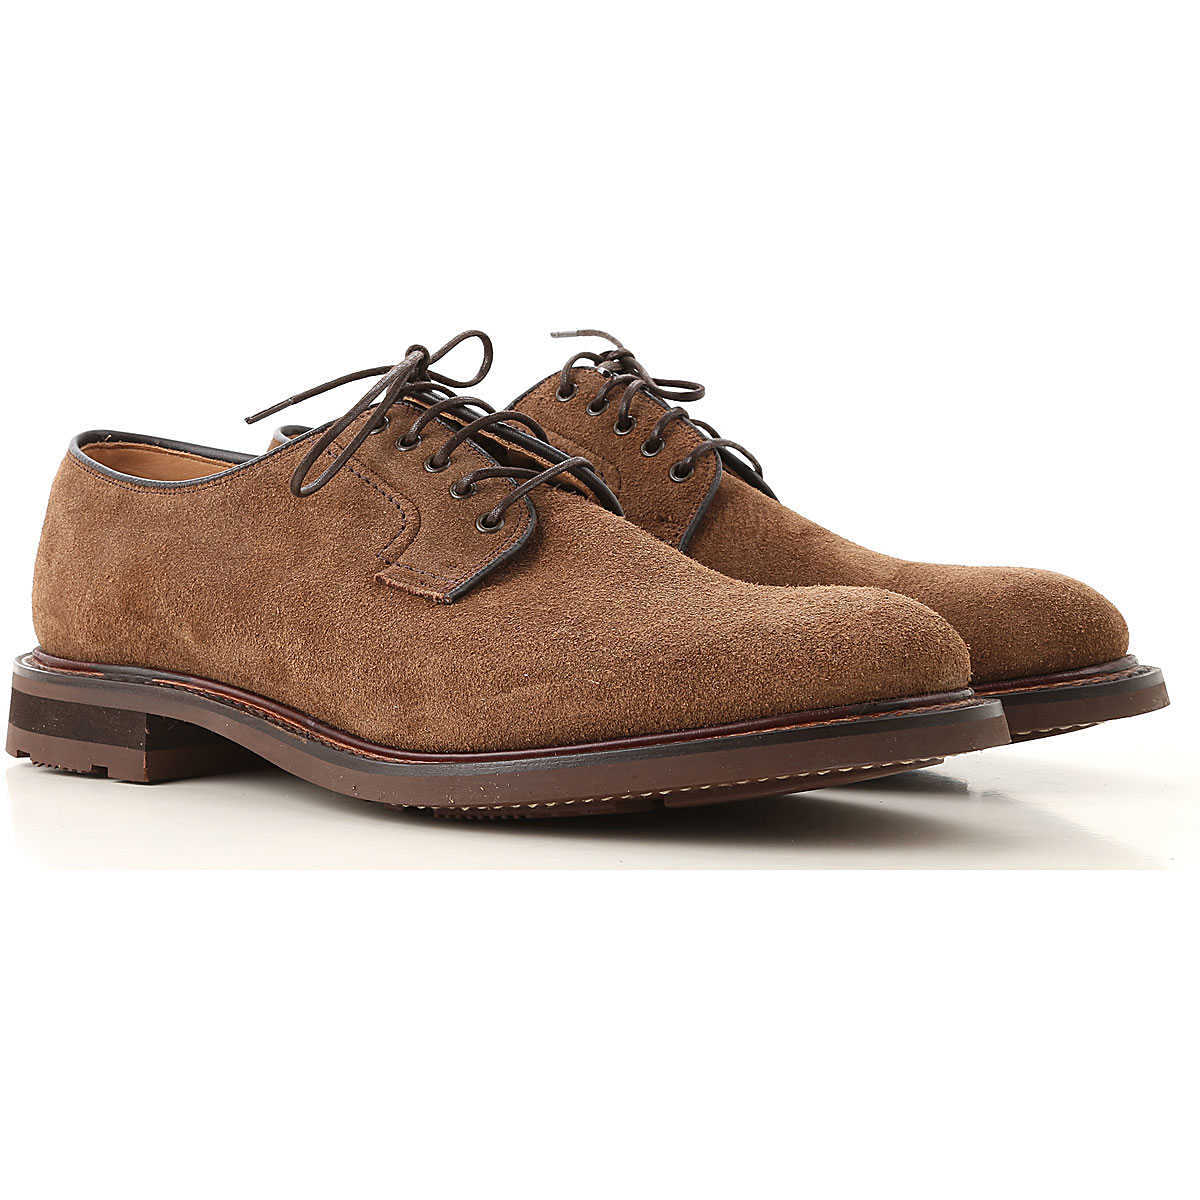 Church's Oxford Shoes for Men On Sale Brown DK - GOOFASH - Mens FORMAL SHOES